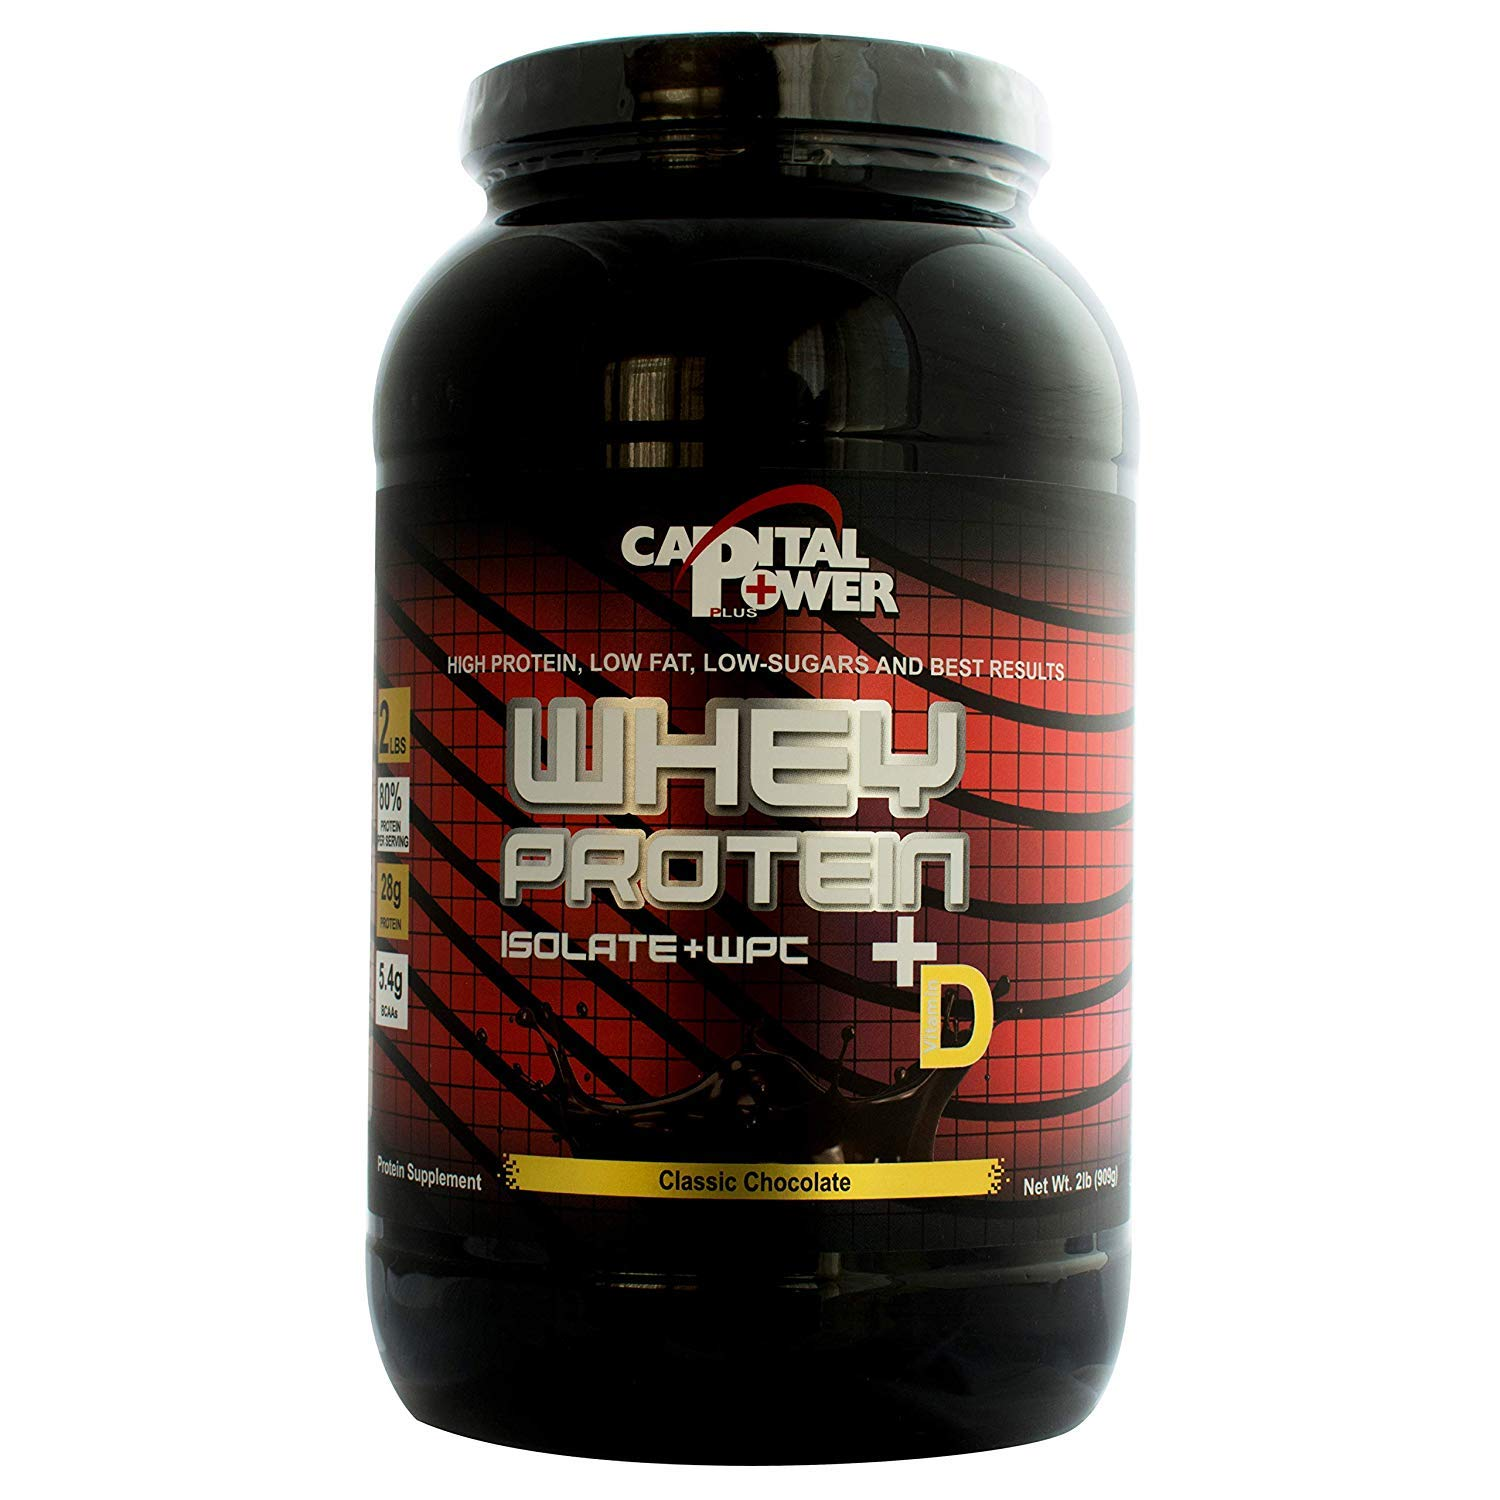 Capital Power Plus Whey Chocolate Isolate 80 Protein